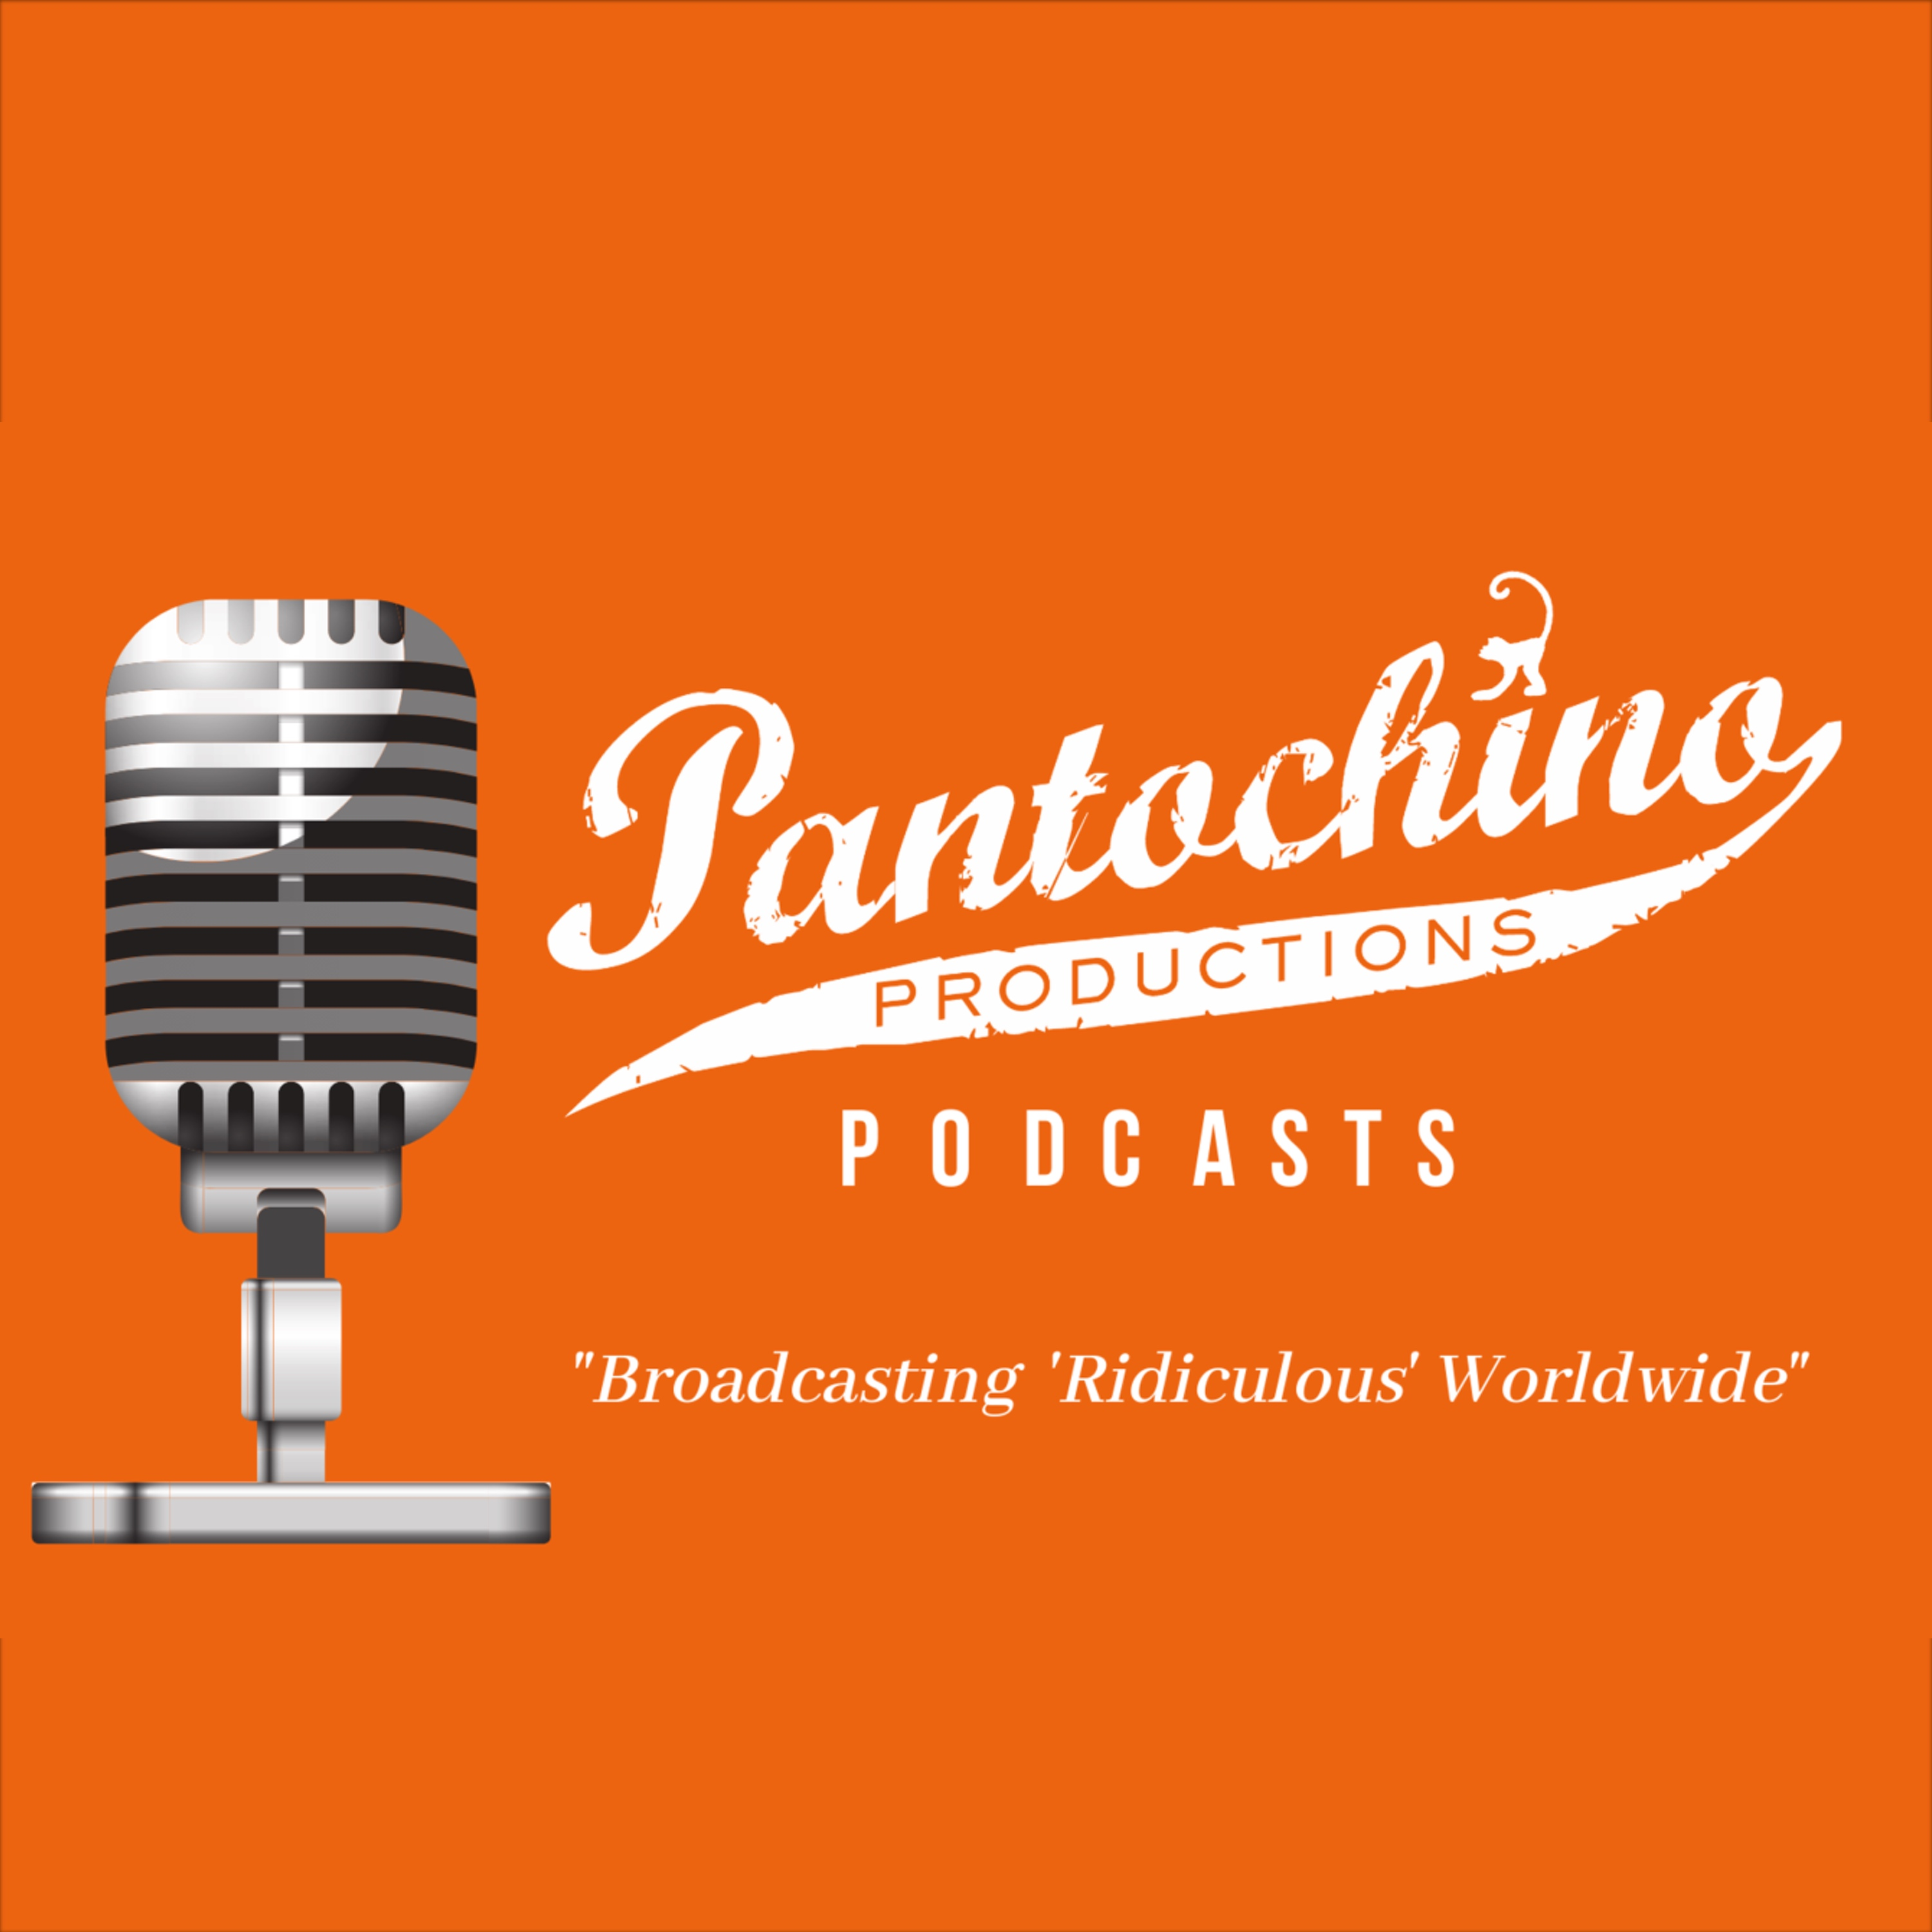 Show artwork for Pantochino Podcasts